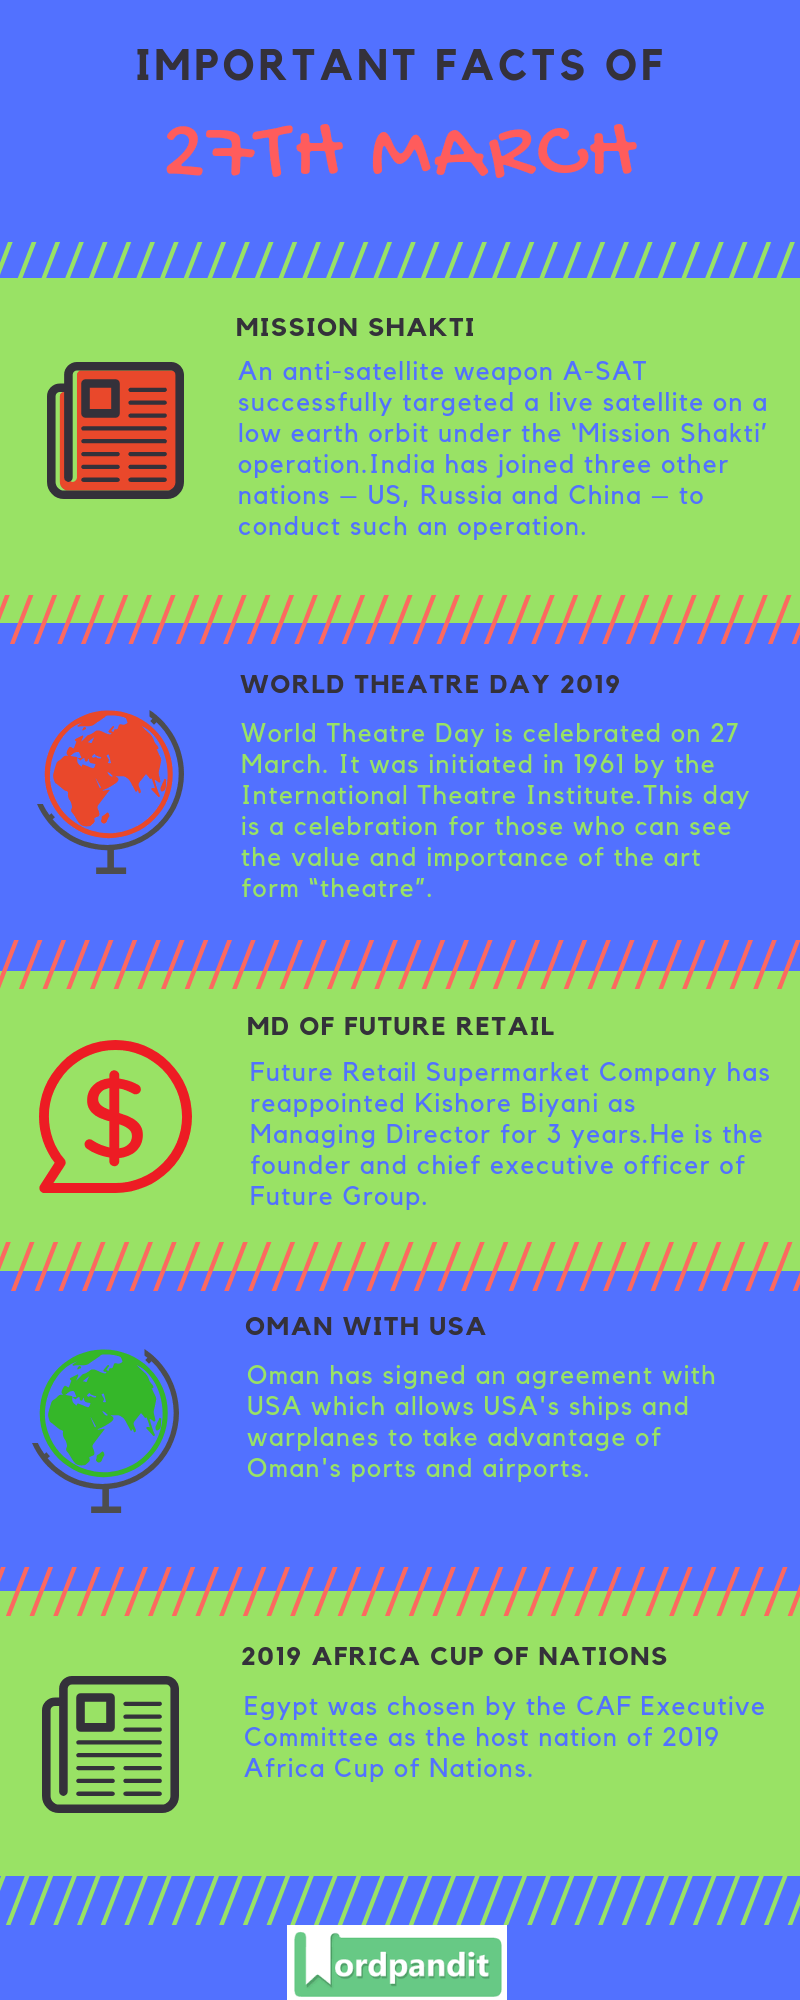 Daily Current Affairs 27 March 2019 Current Affairs Quiz 27 March 2019 Current Affairs Infographic